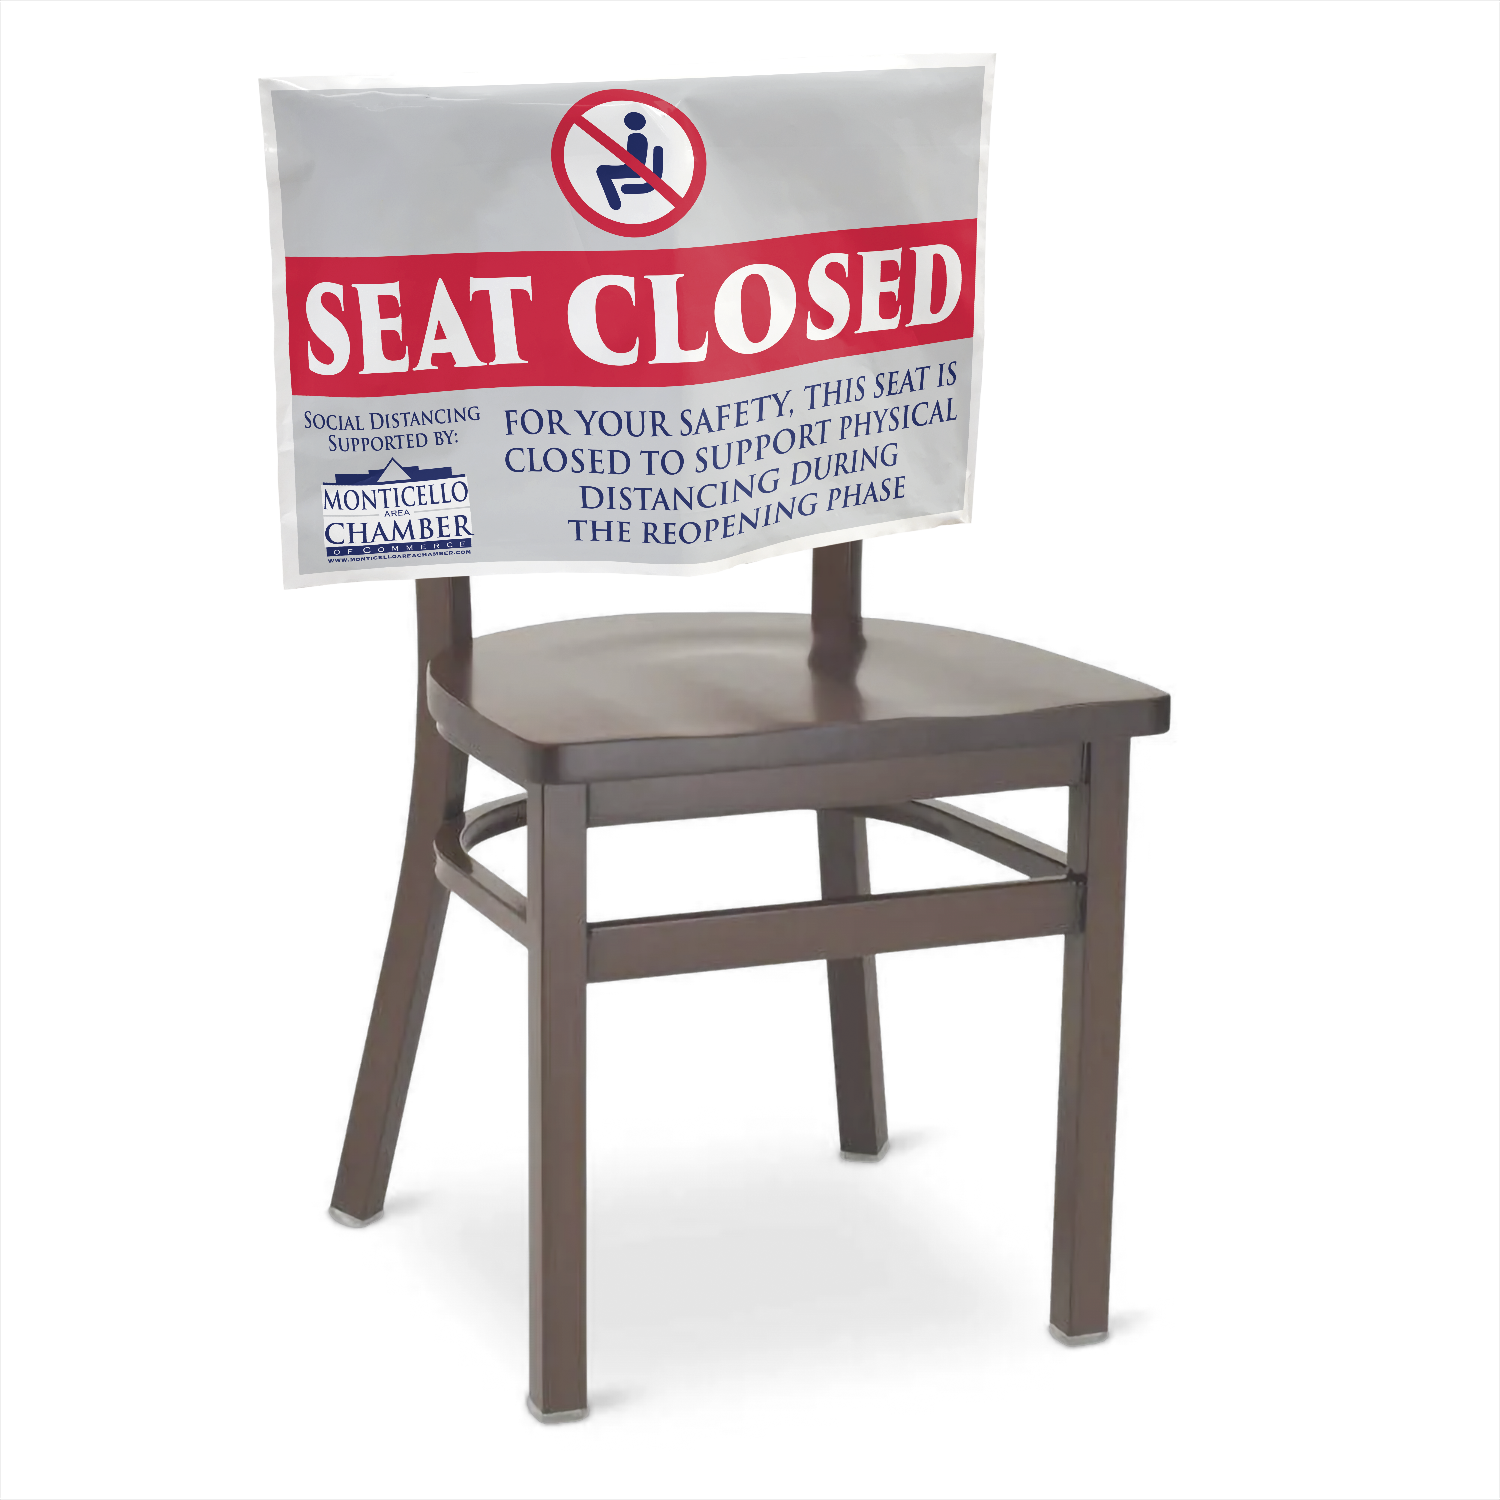 https://www.sswprinting.com/images/products_gallery_images/400201_Chair-Font_Seat-Closed_hi-res.png